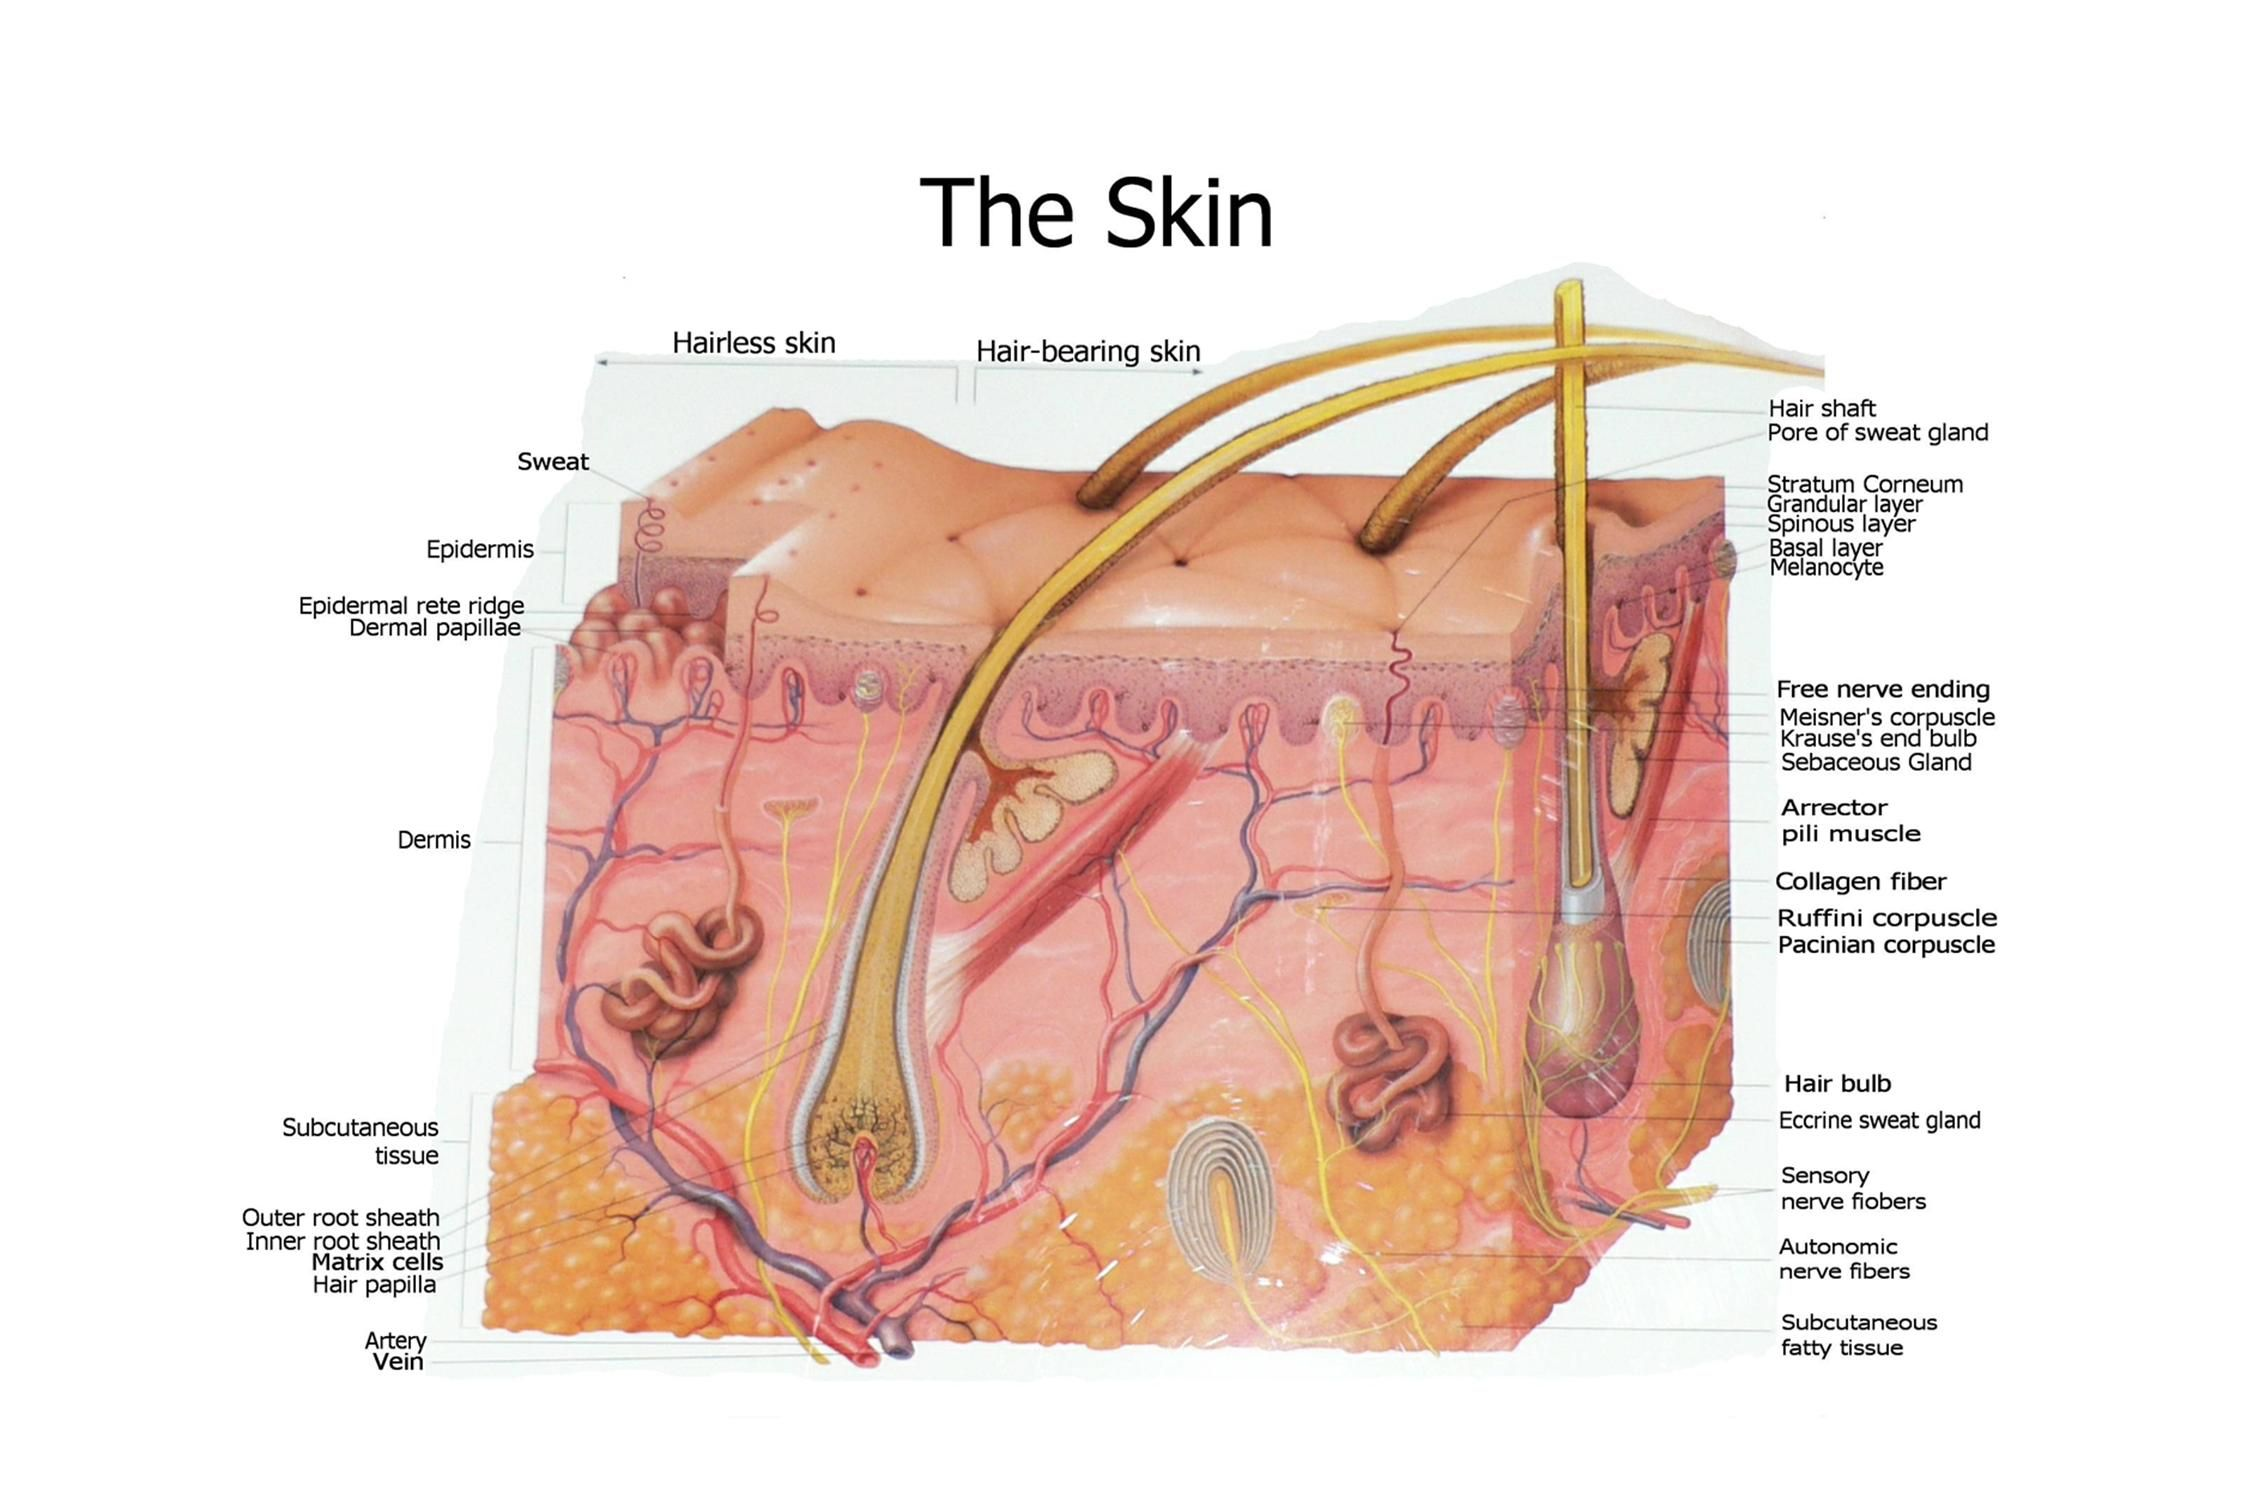 skin anatomy muscular system health pictures skin problems diagram surgery  [ 2250 x 1500 Pixel ]